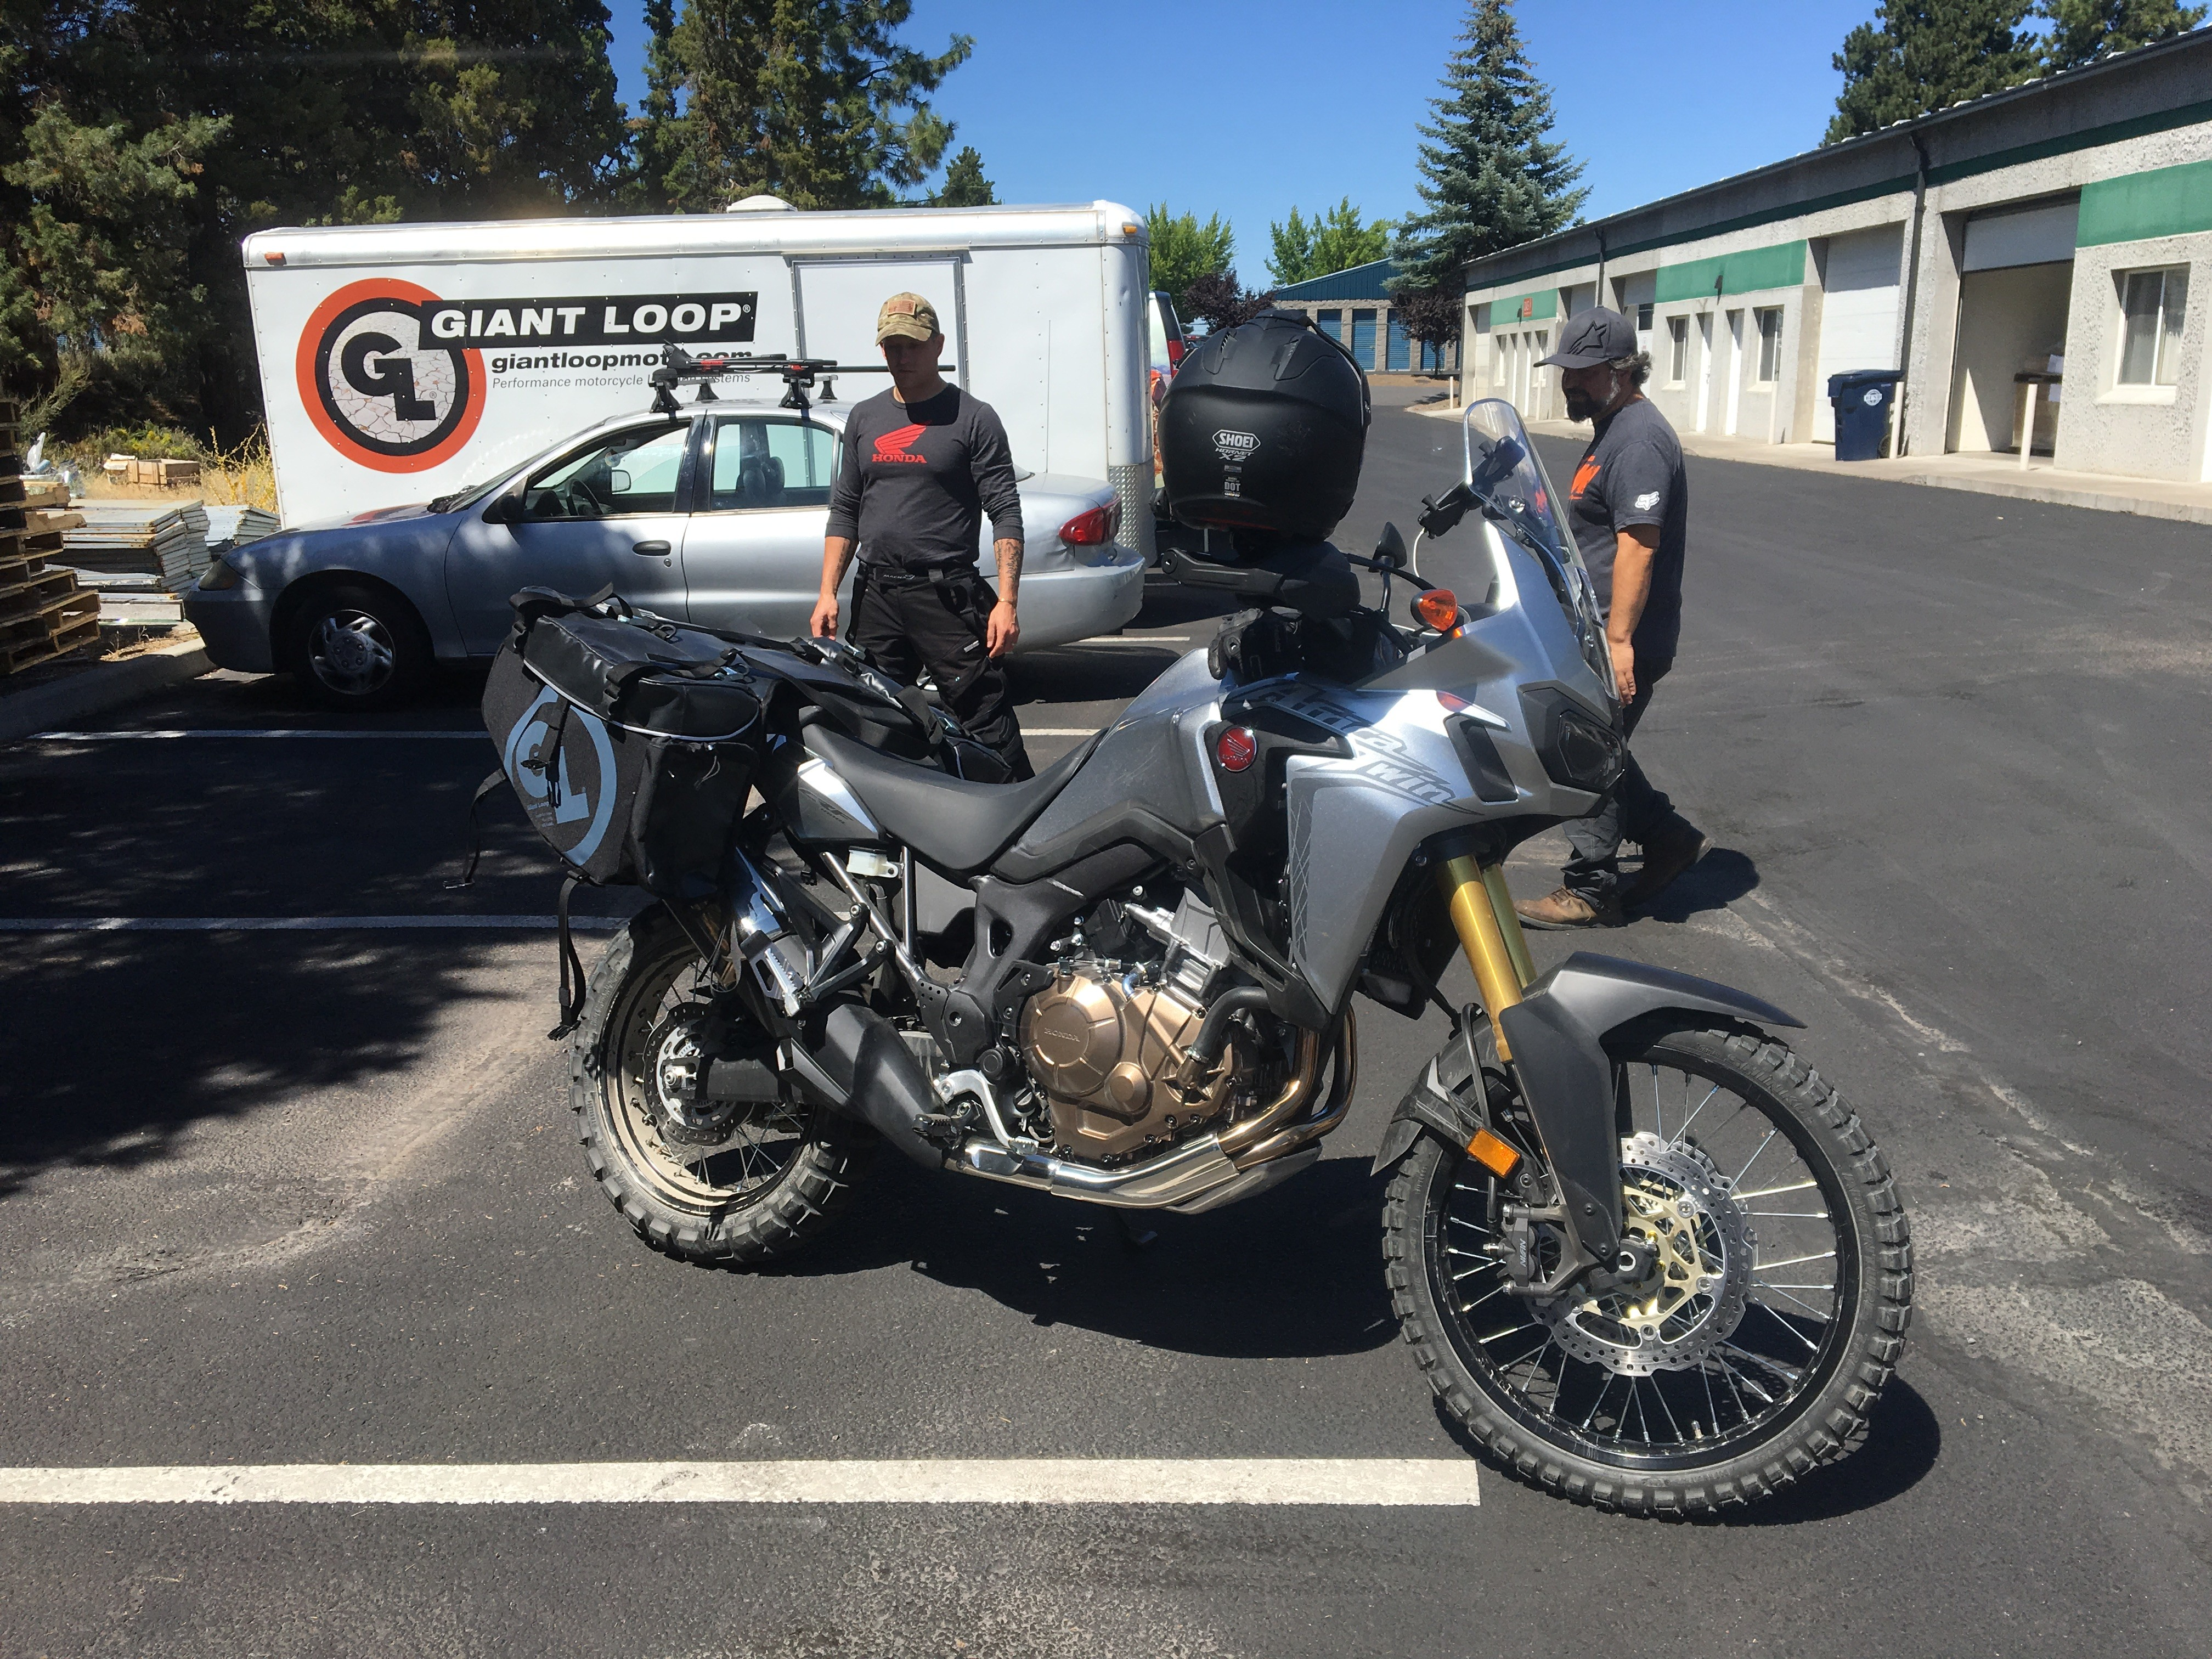 Siskiyou panniers archives giant loop finally getting the opportunity to do some fitting on the new honda africa twin this customer rode over the cascades from oregons willamette valley to our thecheapjerseys Choice Image